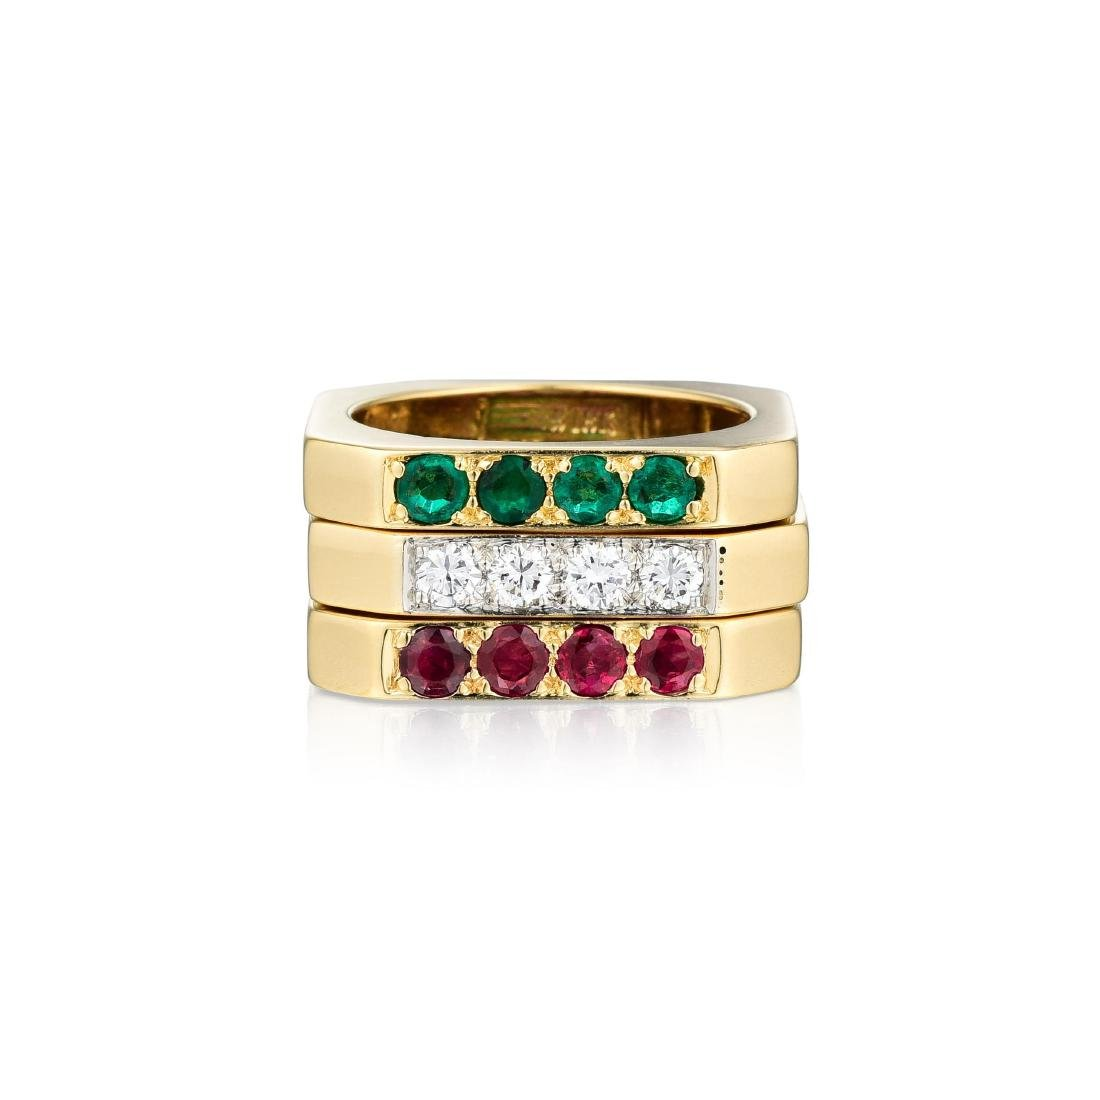 David Webb Diamond Ruby and Emerald Ring Set